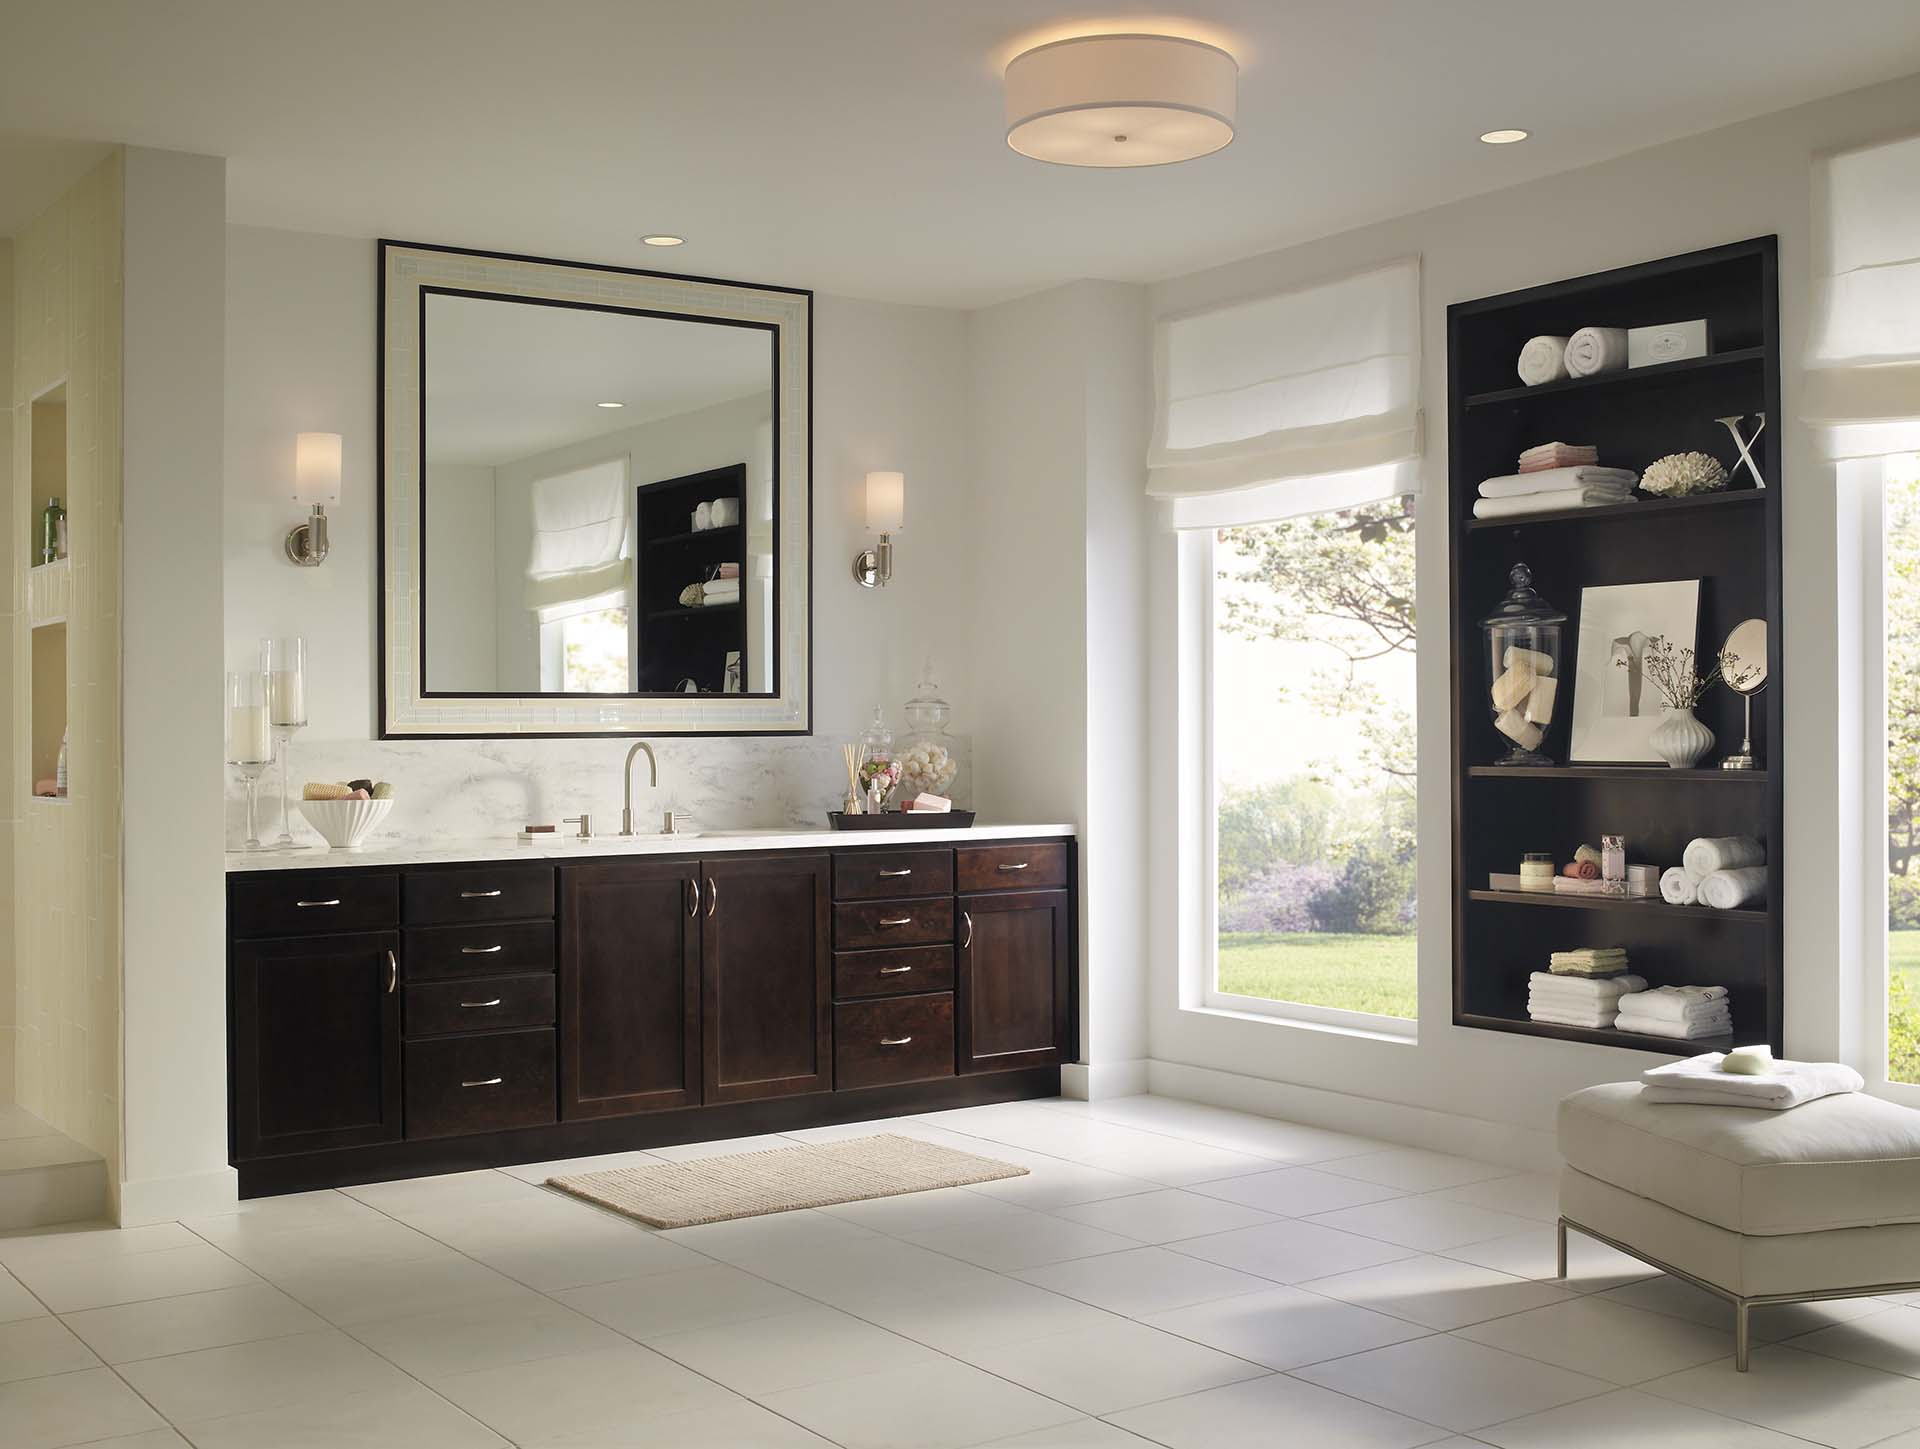 Coles Fine Flooring | Kitchen And Bath Design Center